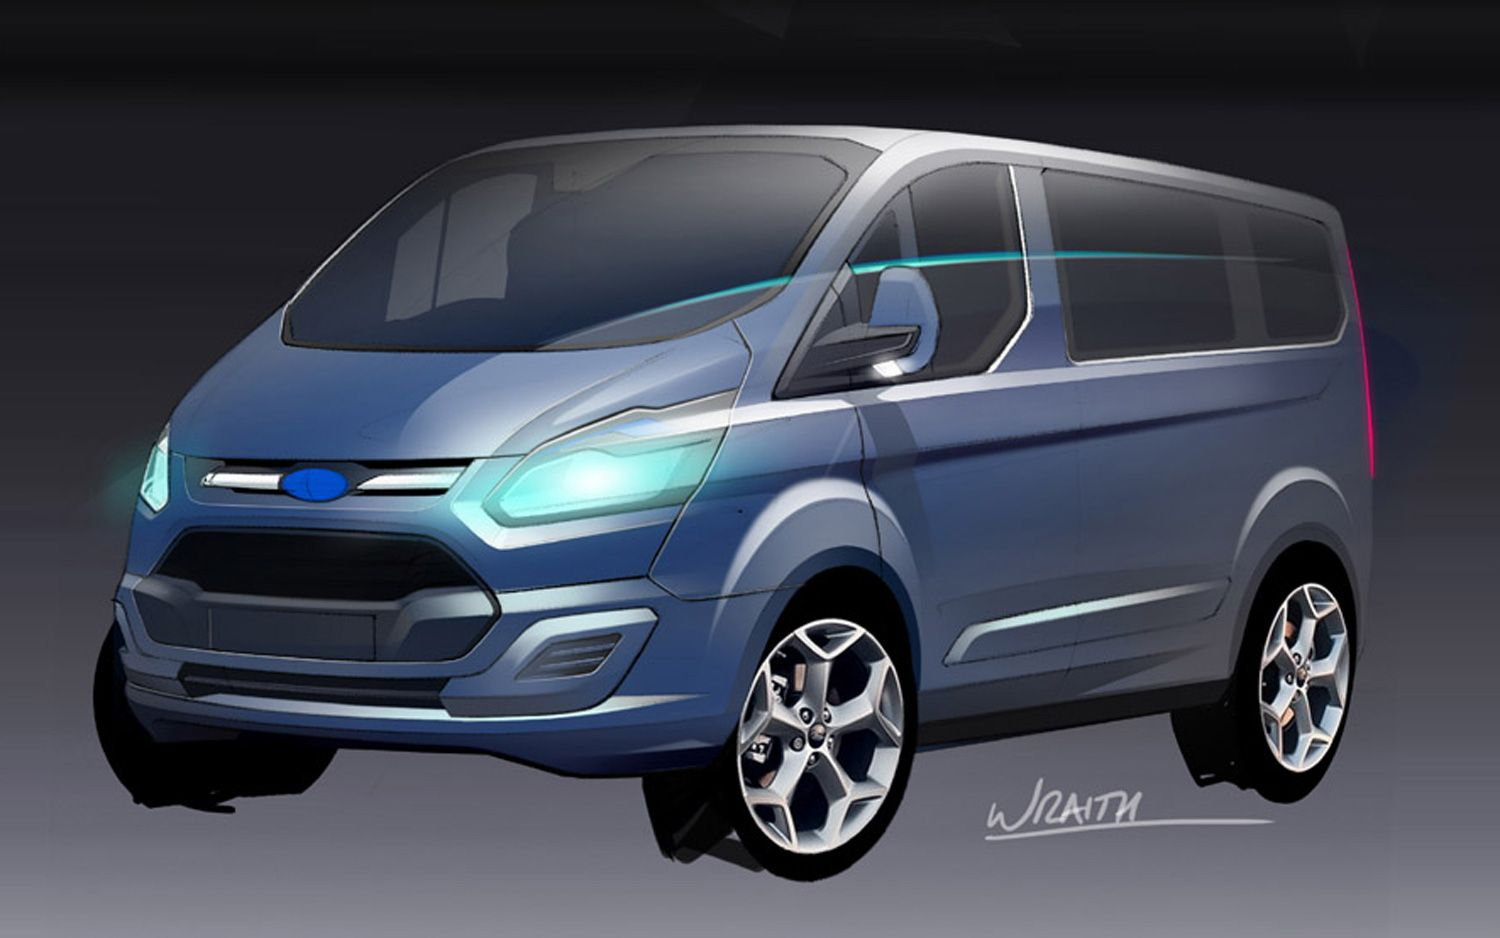 Ford tourneo courier pictures to pin on pinterest - Find This Pin And More On Ford Tourneo By Chromedoranges